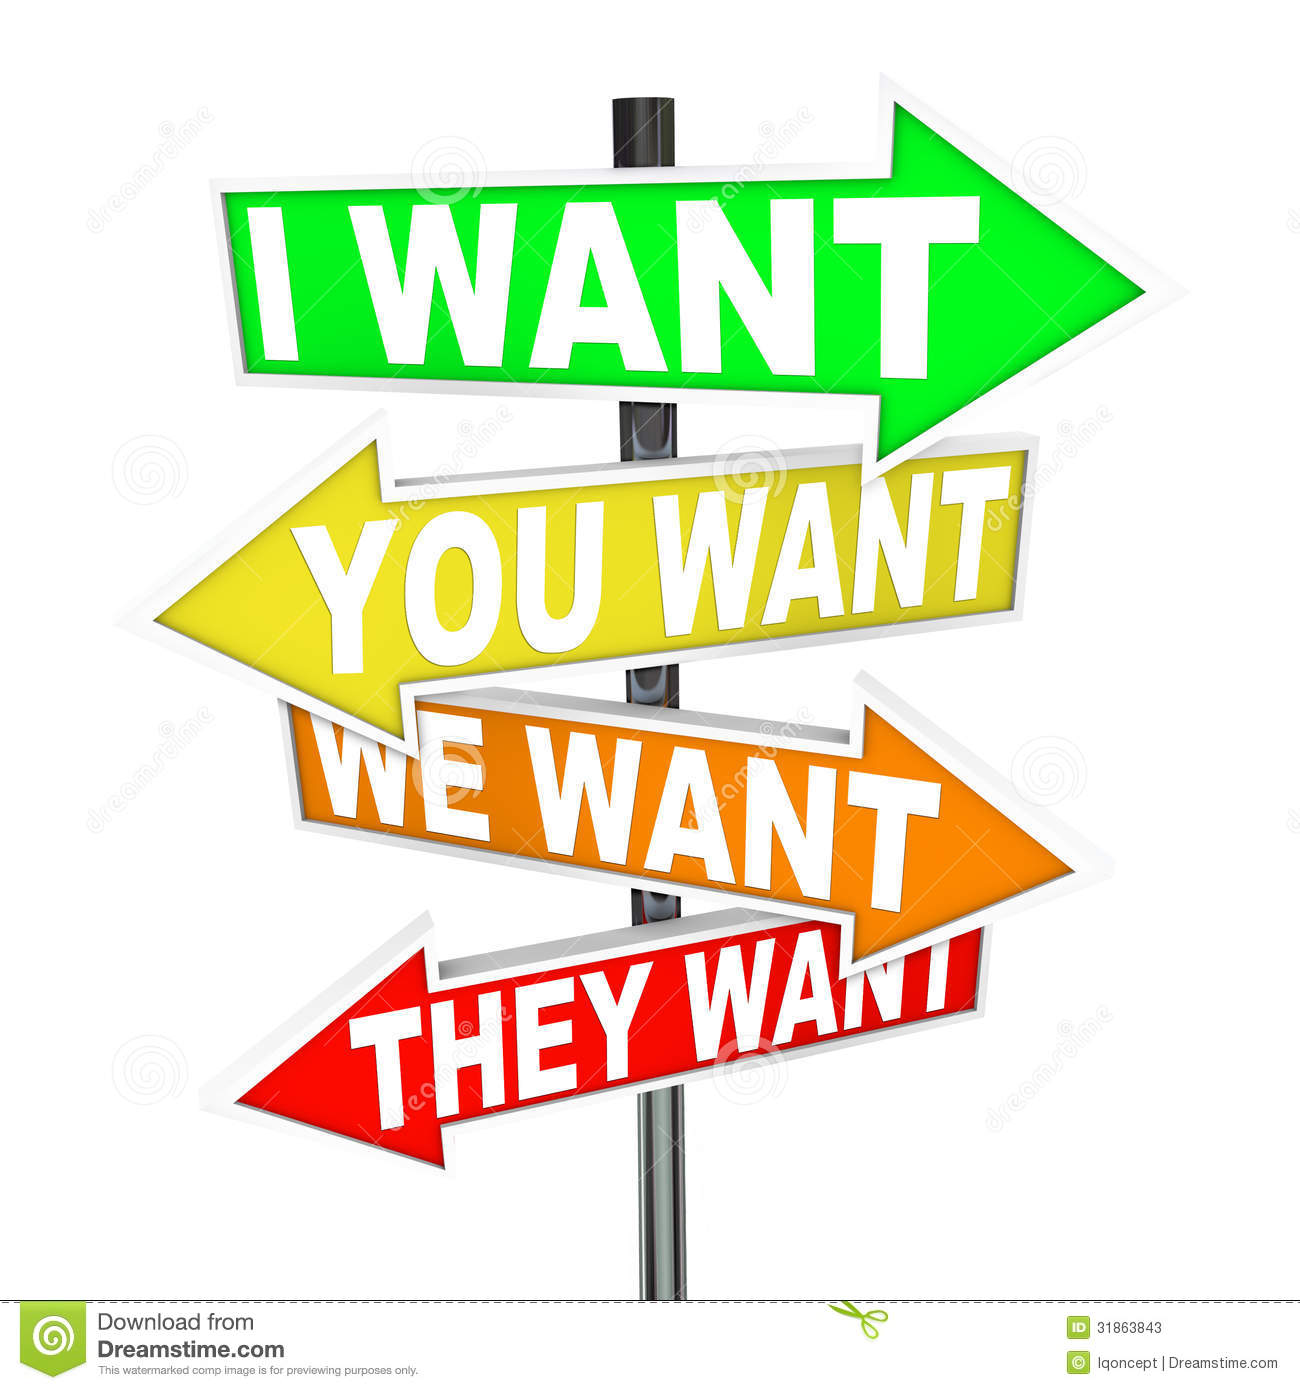 My Wants And Needs Vs Yours